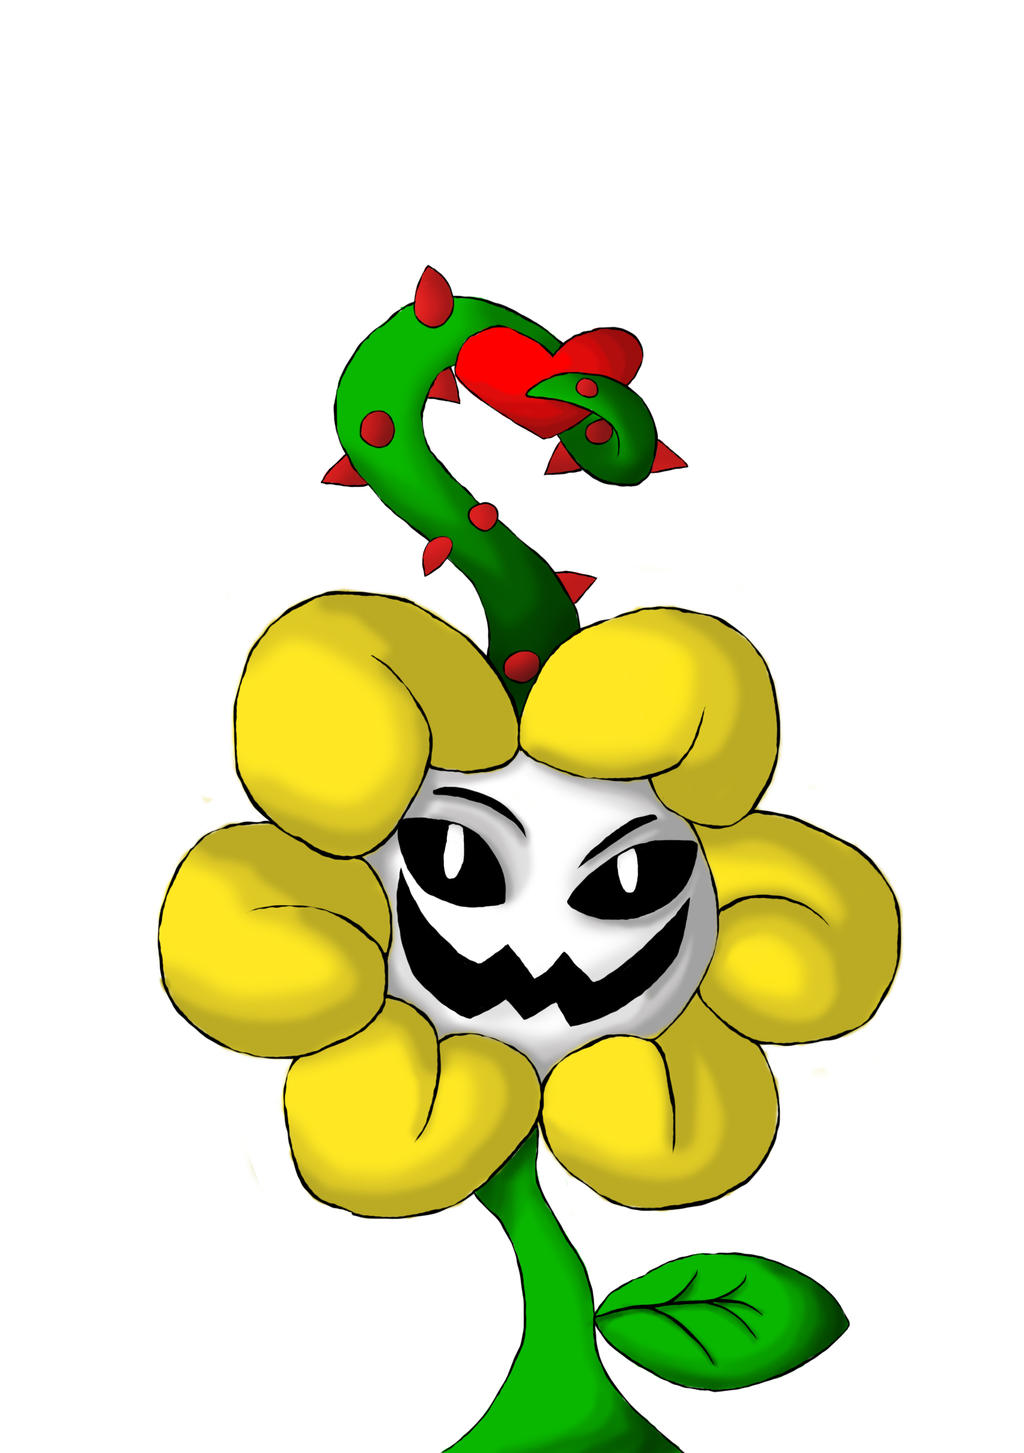 Flowey the Flower by DJTBProductions on DeviantArt